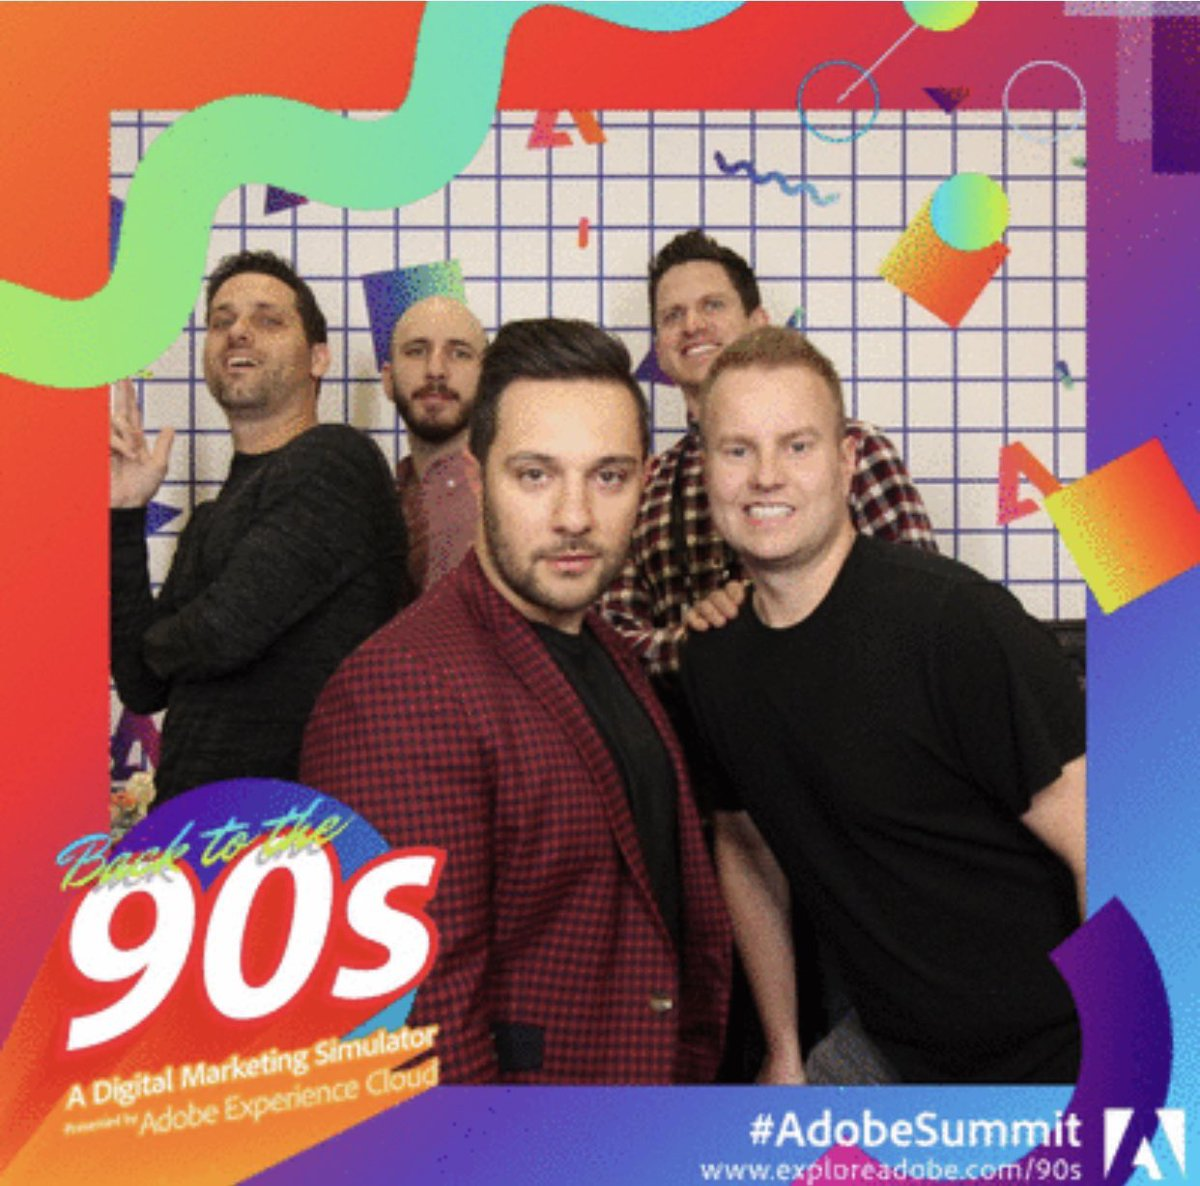 joeDmarti: Two years ago we recreated this New Kids On The Block picture at #AdobeSummit and my life has never been the same. https://t.co/3RGILfBLuj